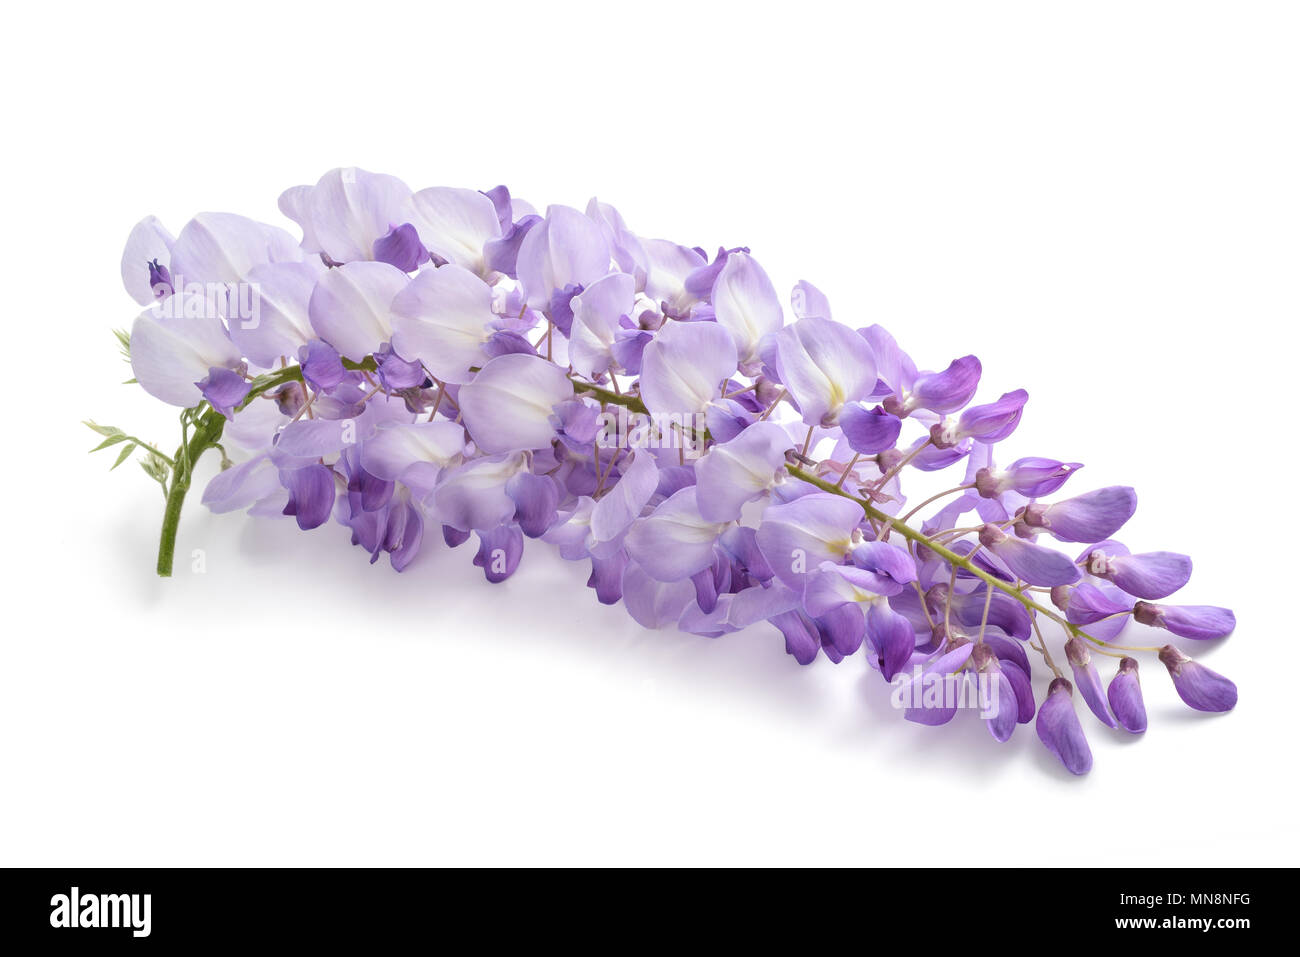 wisteria flowers isolated on white background - Stock Image